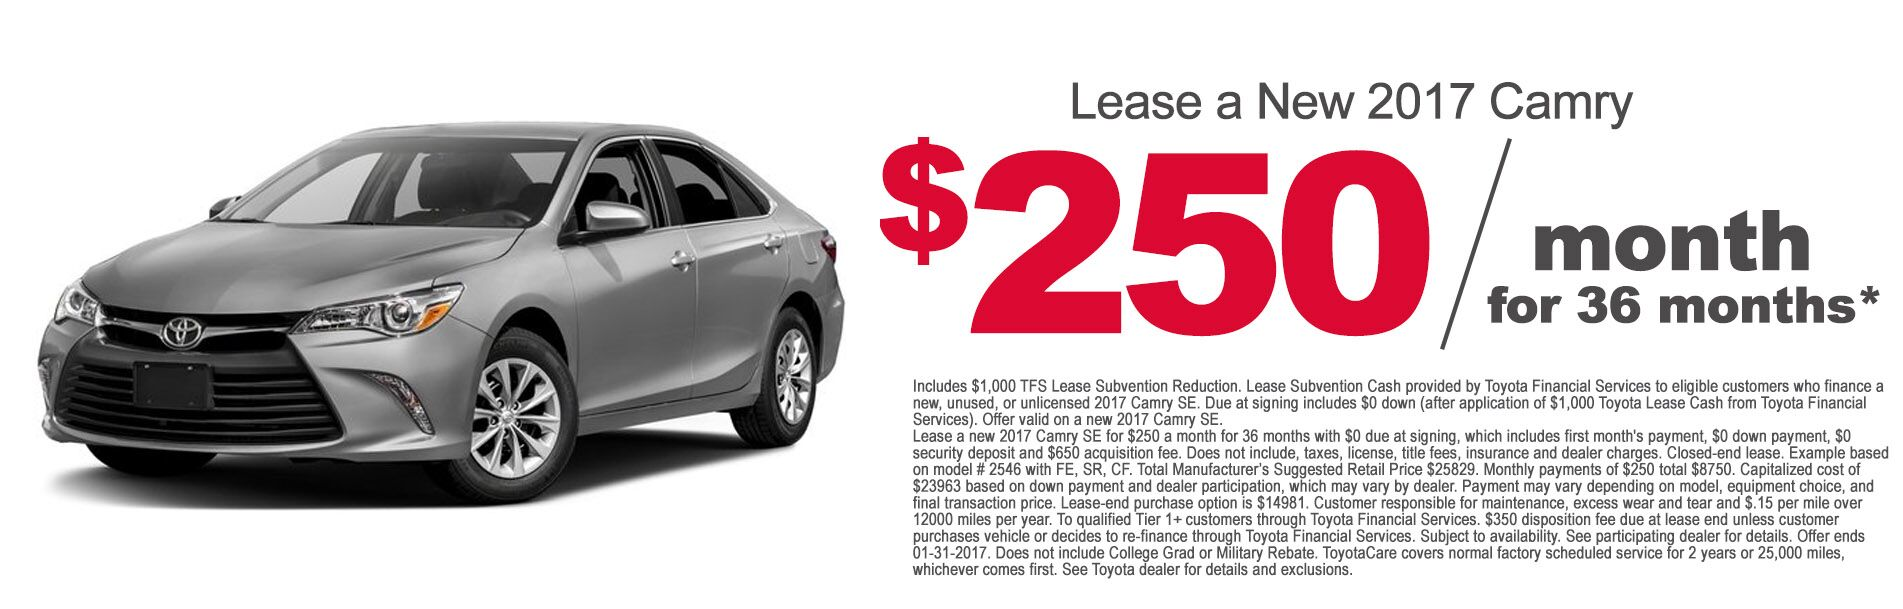 Toyota Lease Deals Rochester Ny I9 Sports Coupon